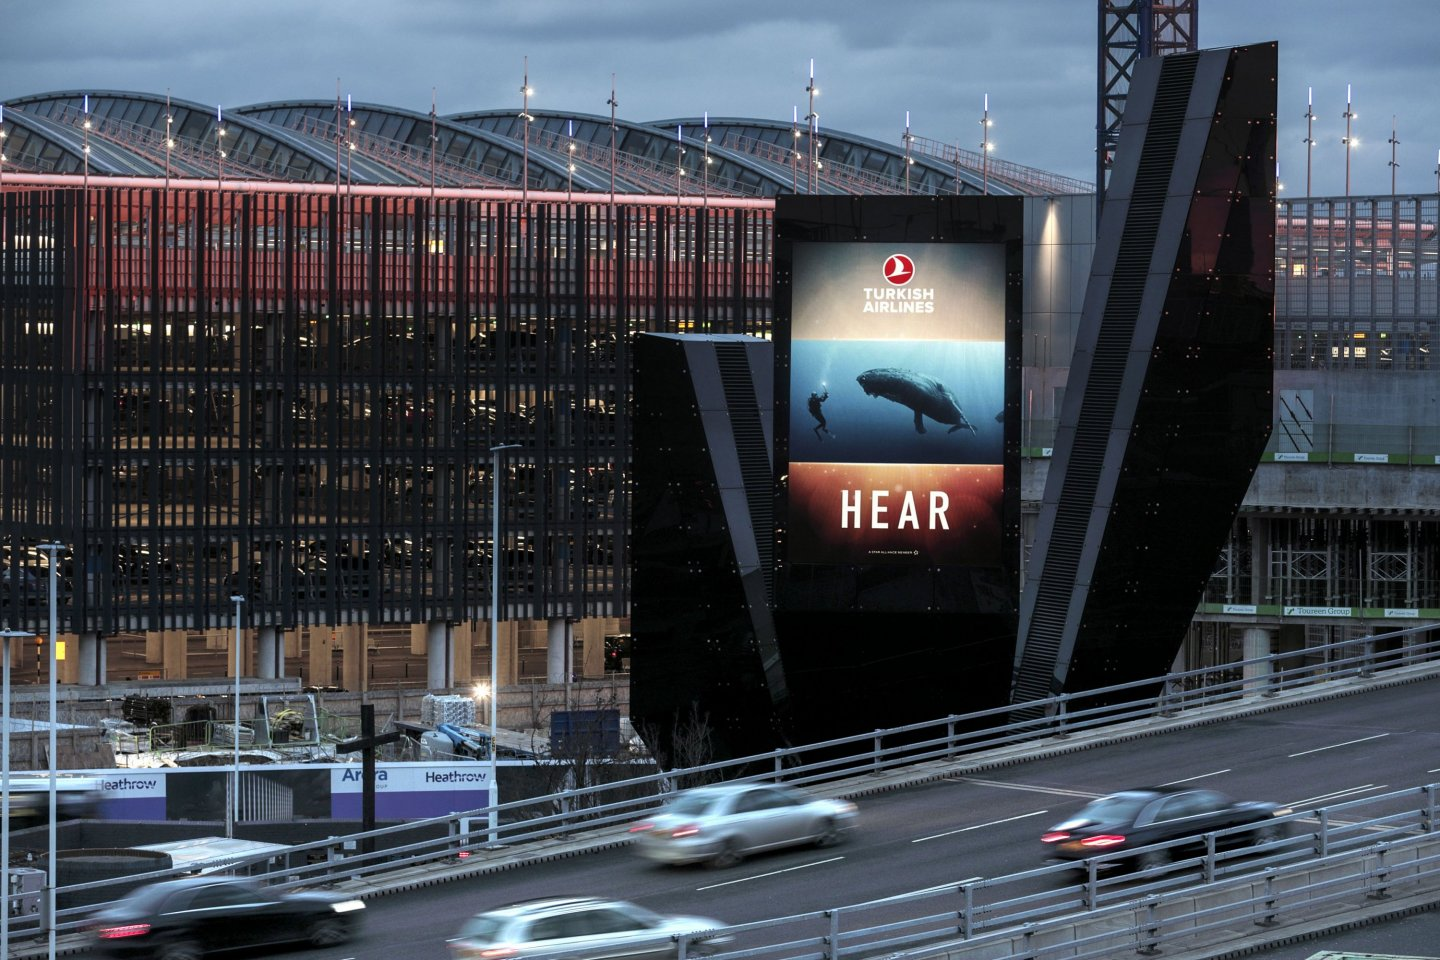 10 Reasons Why Airport Advertising Works, Turksih Airlines campaign, Heathrow Airport